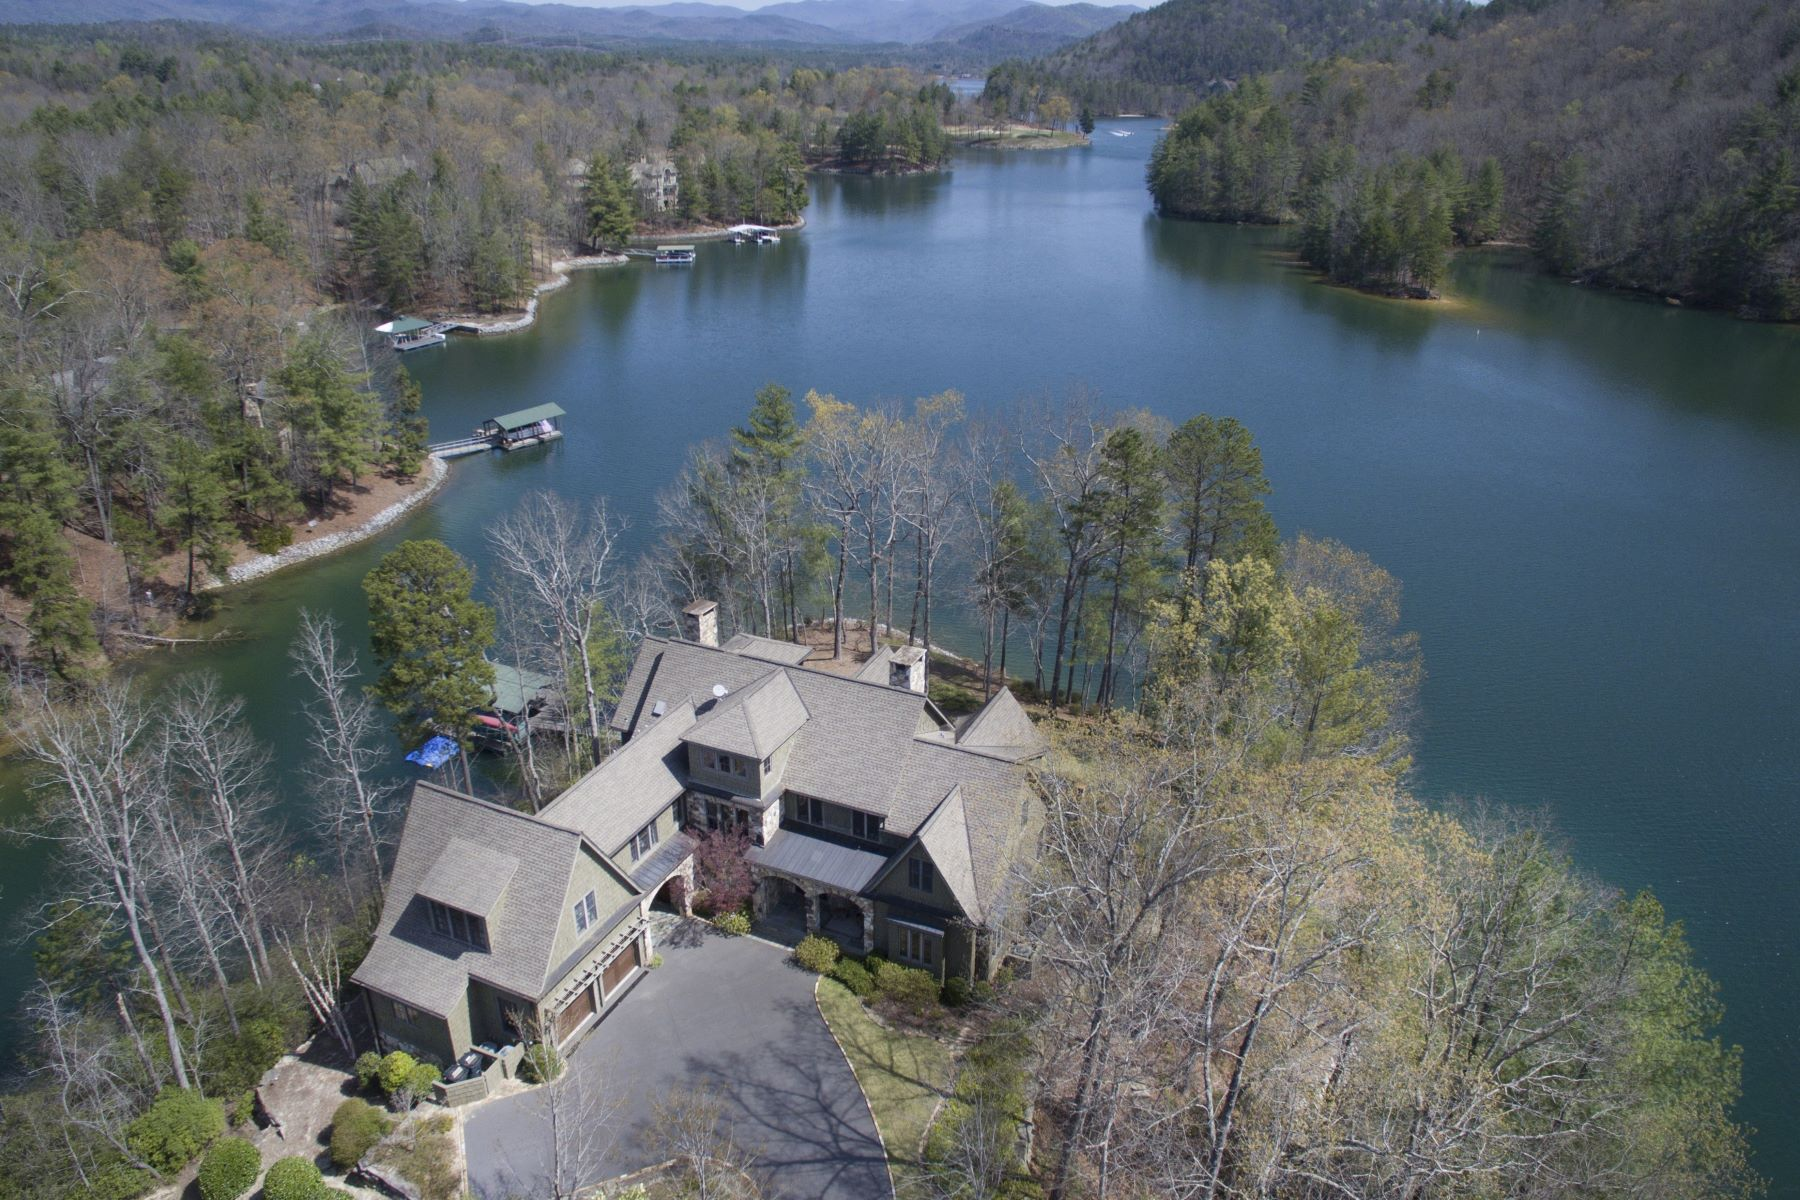 独户住宅 为 销售 在 One of the Finest Homes at The Vineyards- Impeccably Detailed Waterfront Home 805 Wind Flower Drive, The Cliffs At Keowee Vineyards, Sunset, 南卡罗来纳州, 29685 美国